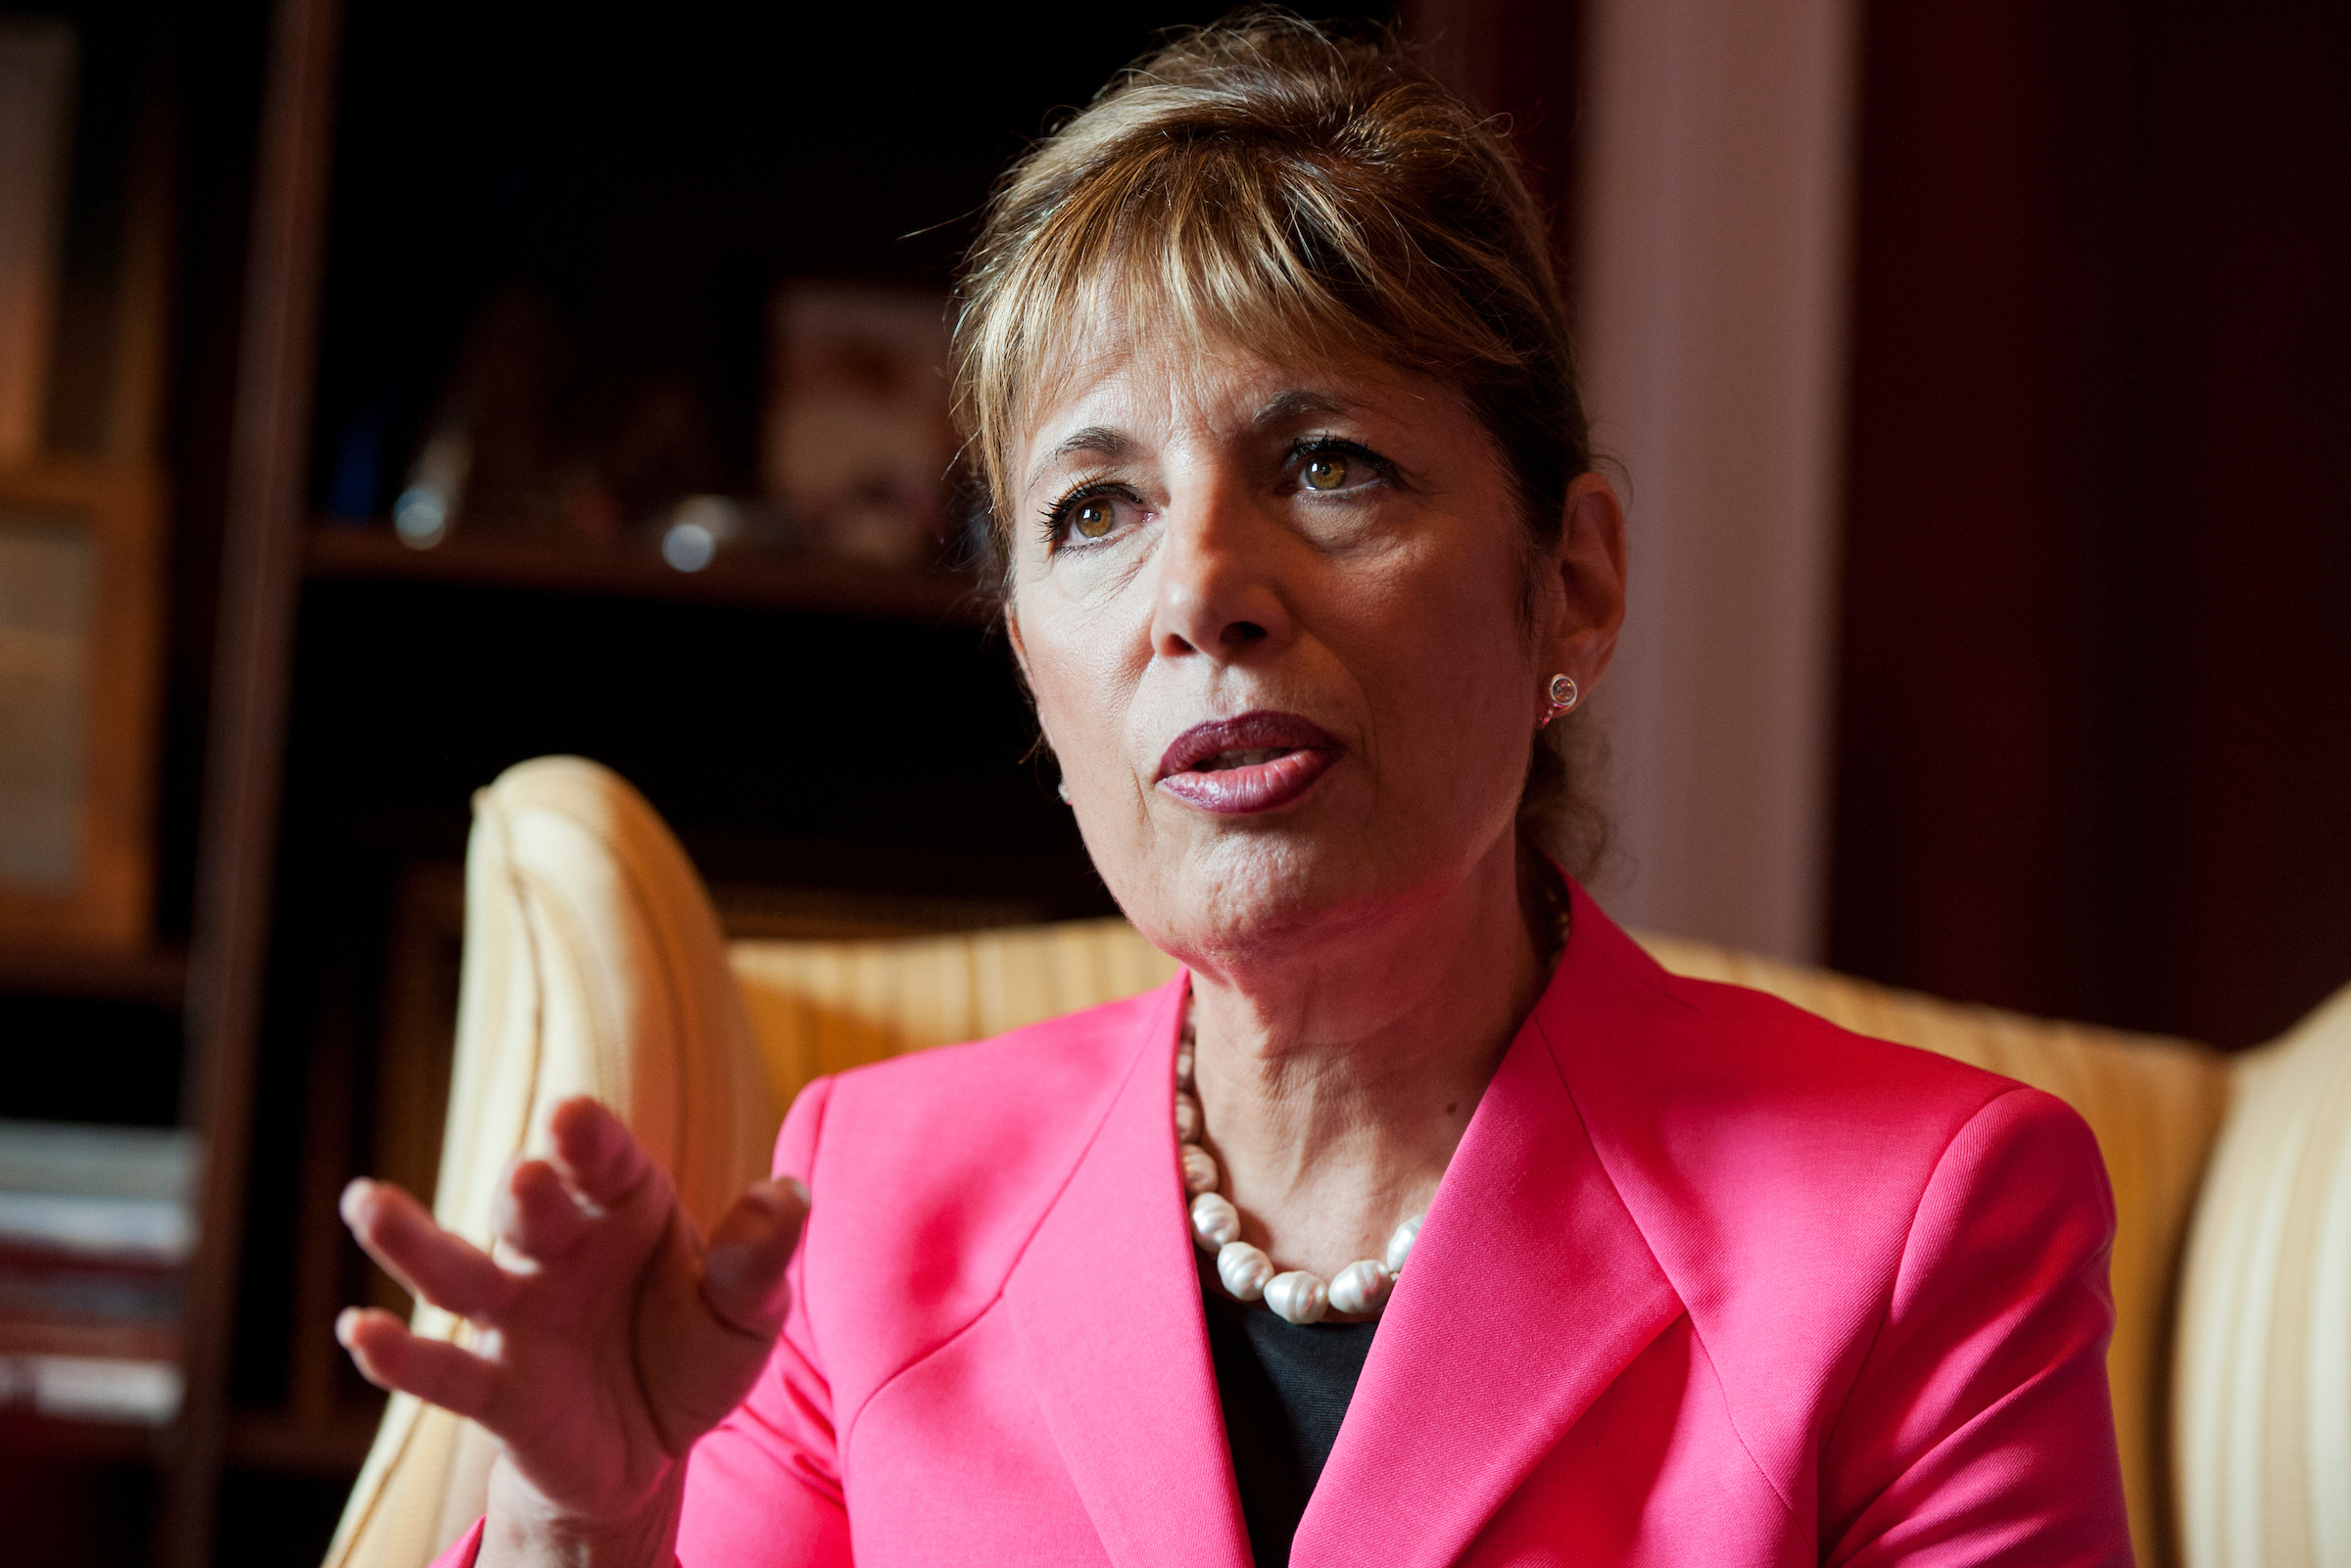 "California Rep. <a class=""memberLink"" title=""Click to view member info in a new window"" href=""http://data.rollcall.com/members/28222?rel=memberLink"" target=""_blank"">Jackie Speier</a> also heard complaints about sexual harassment as a state assemblywoman in the 1980s. (Tom Williams/CQ Roll Call file photo)"